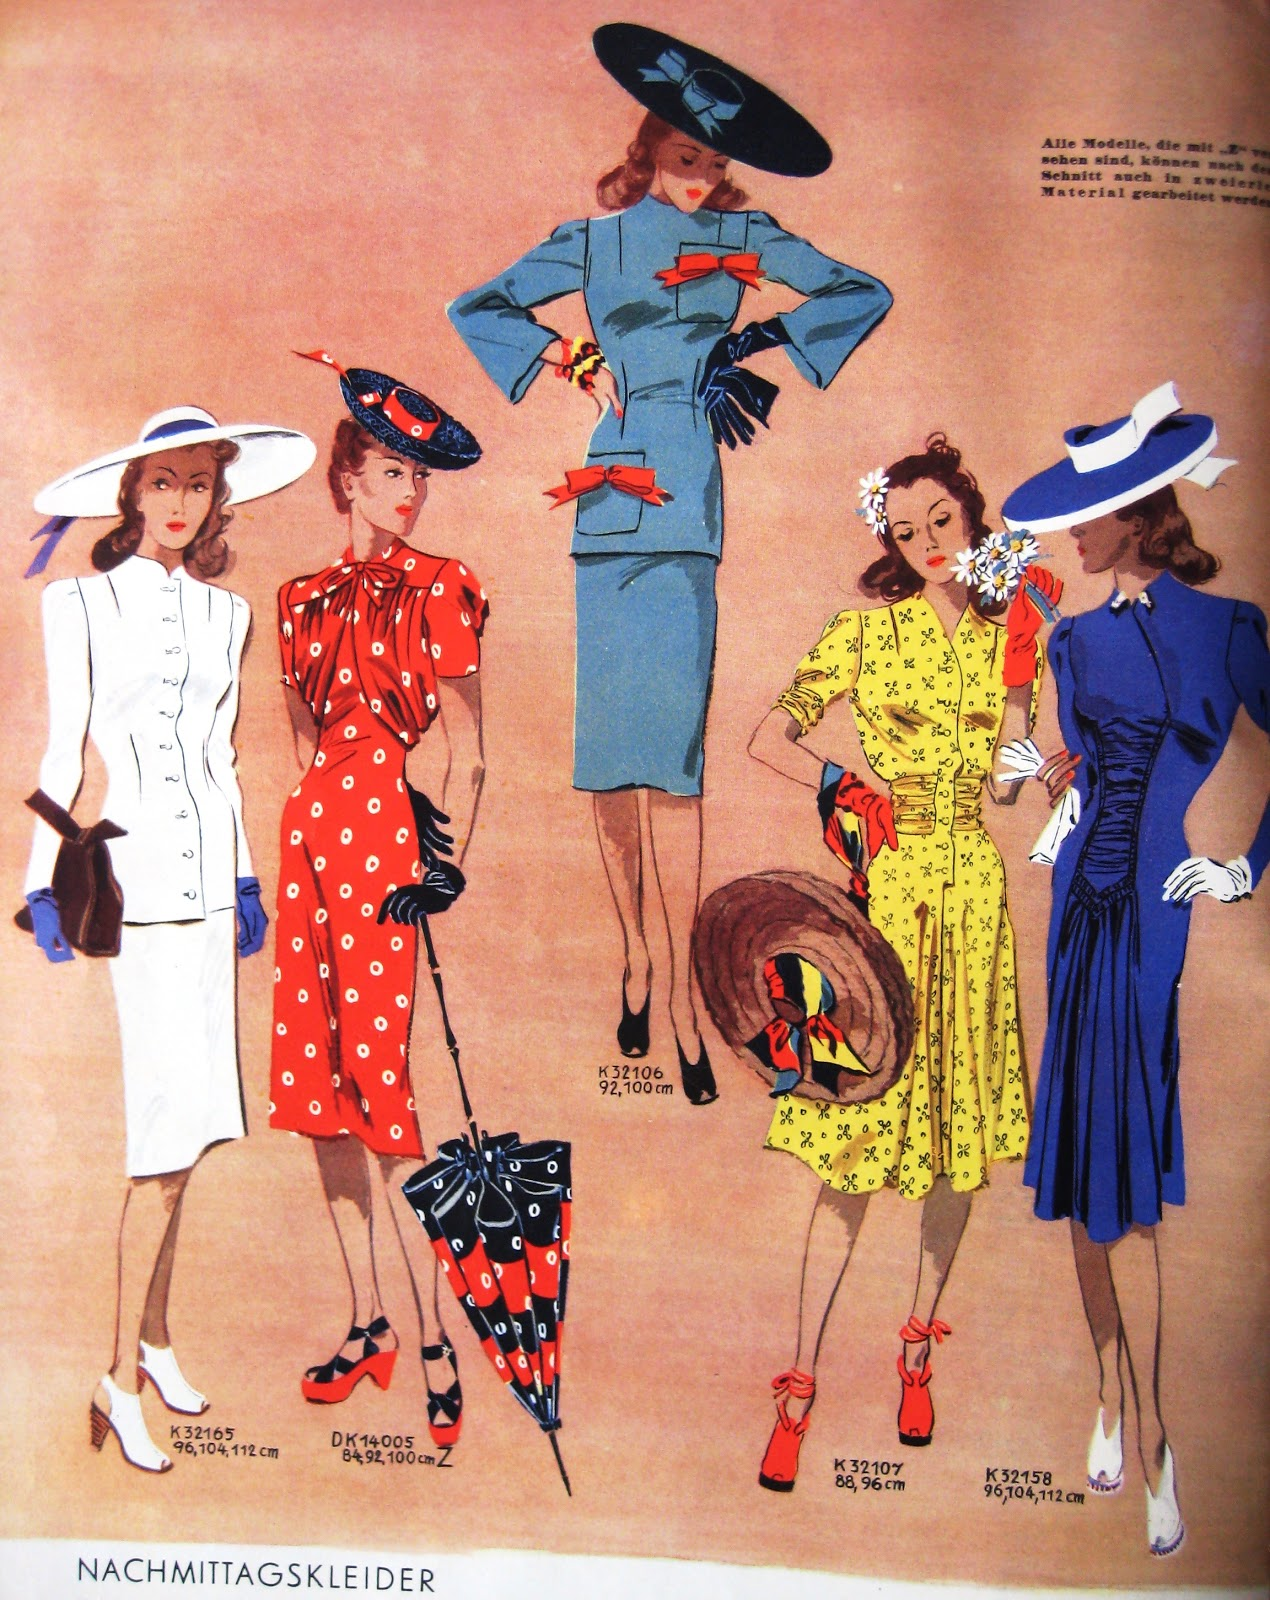 1940s Fashion What Did Women Wear In The 1940s: Color Fashion, Woman Fashion, 1940S Styles, 1940S Fashion